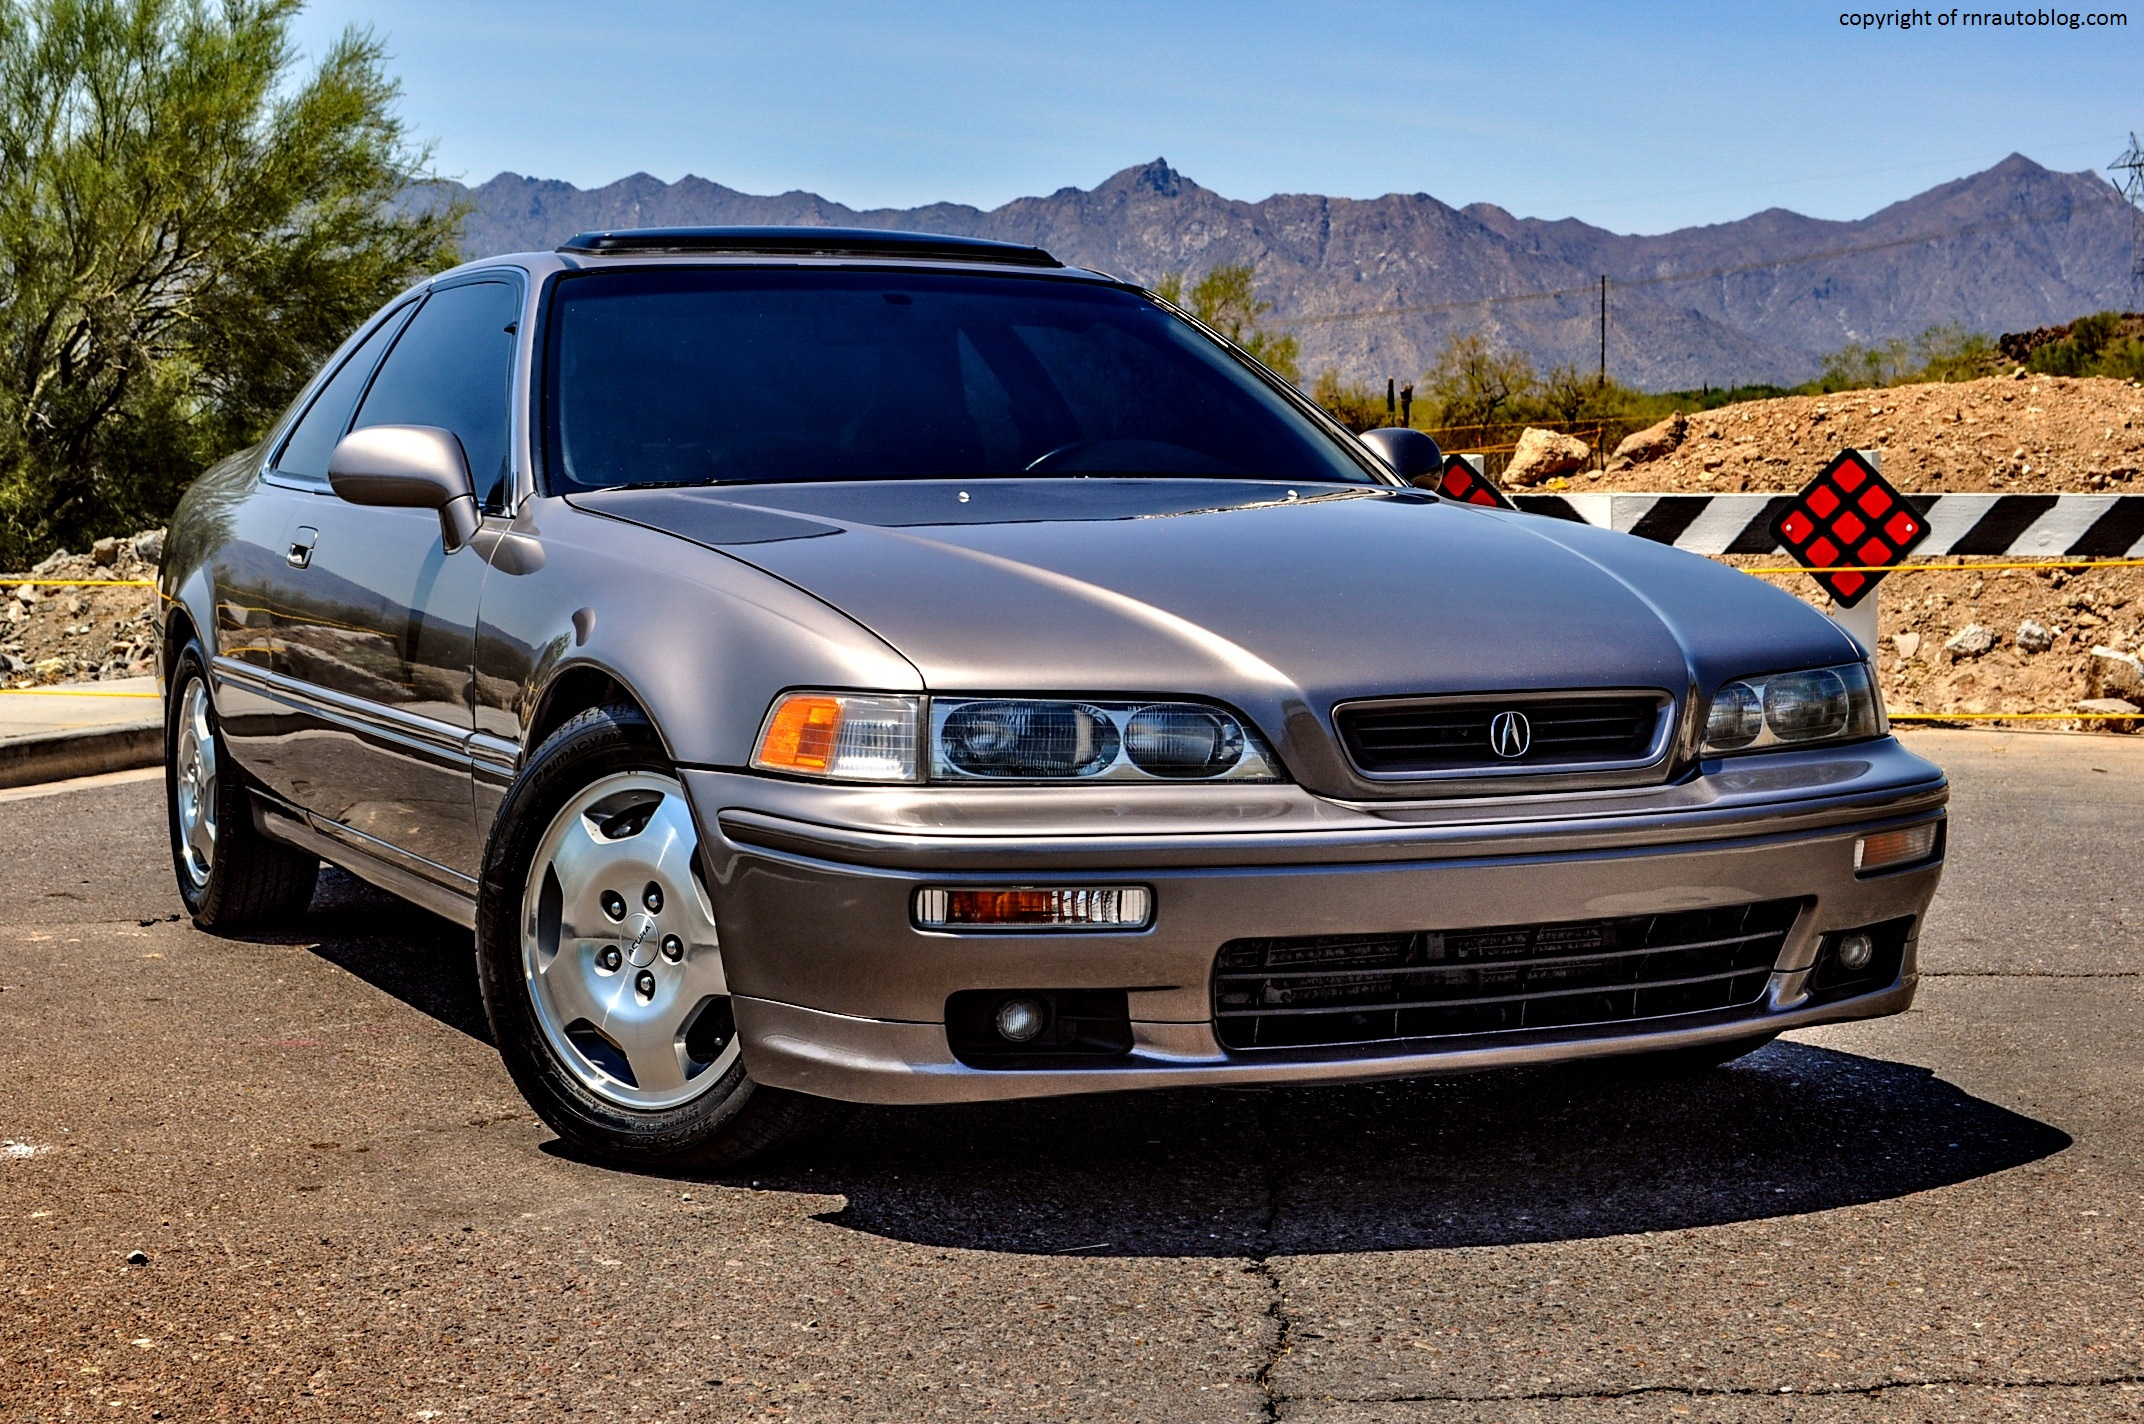 Acura Legend #20